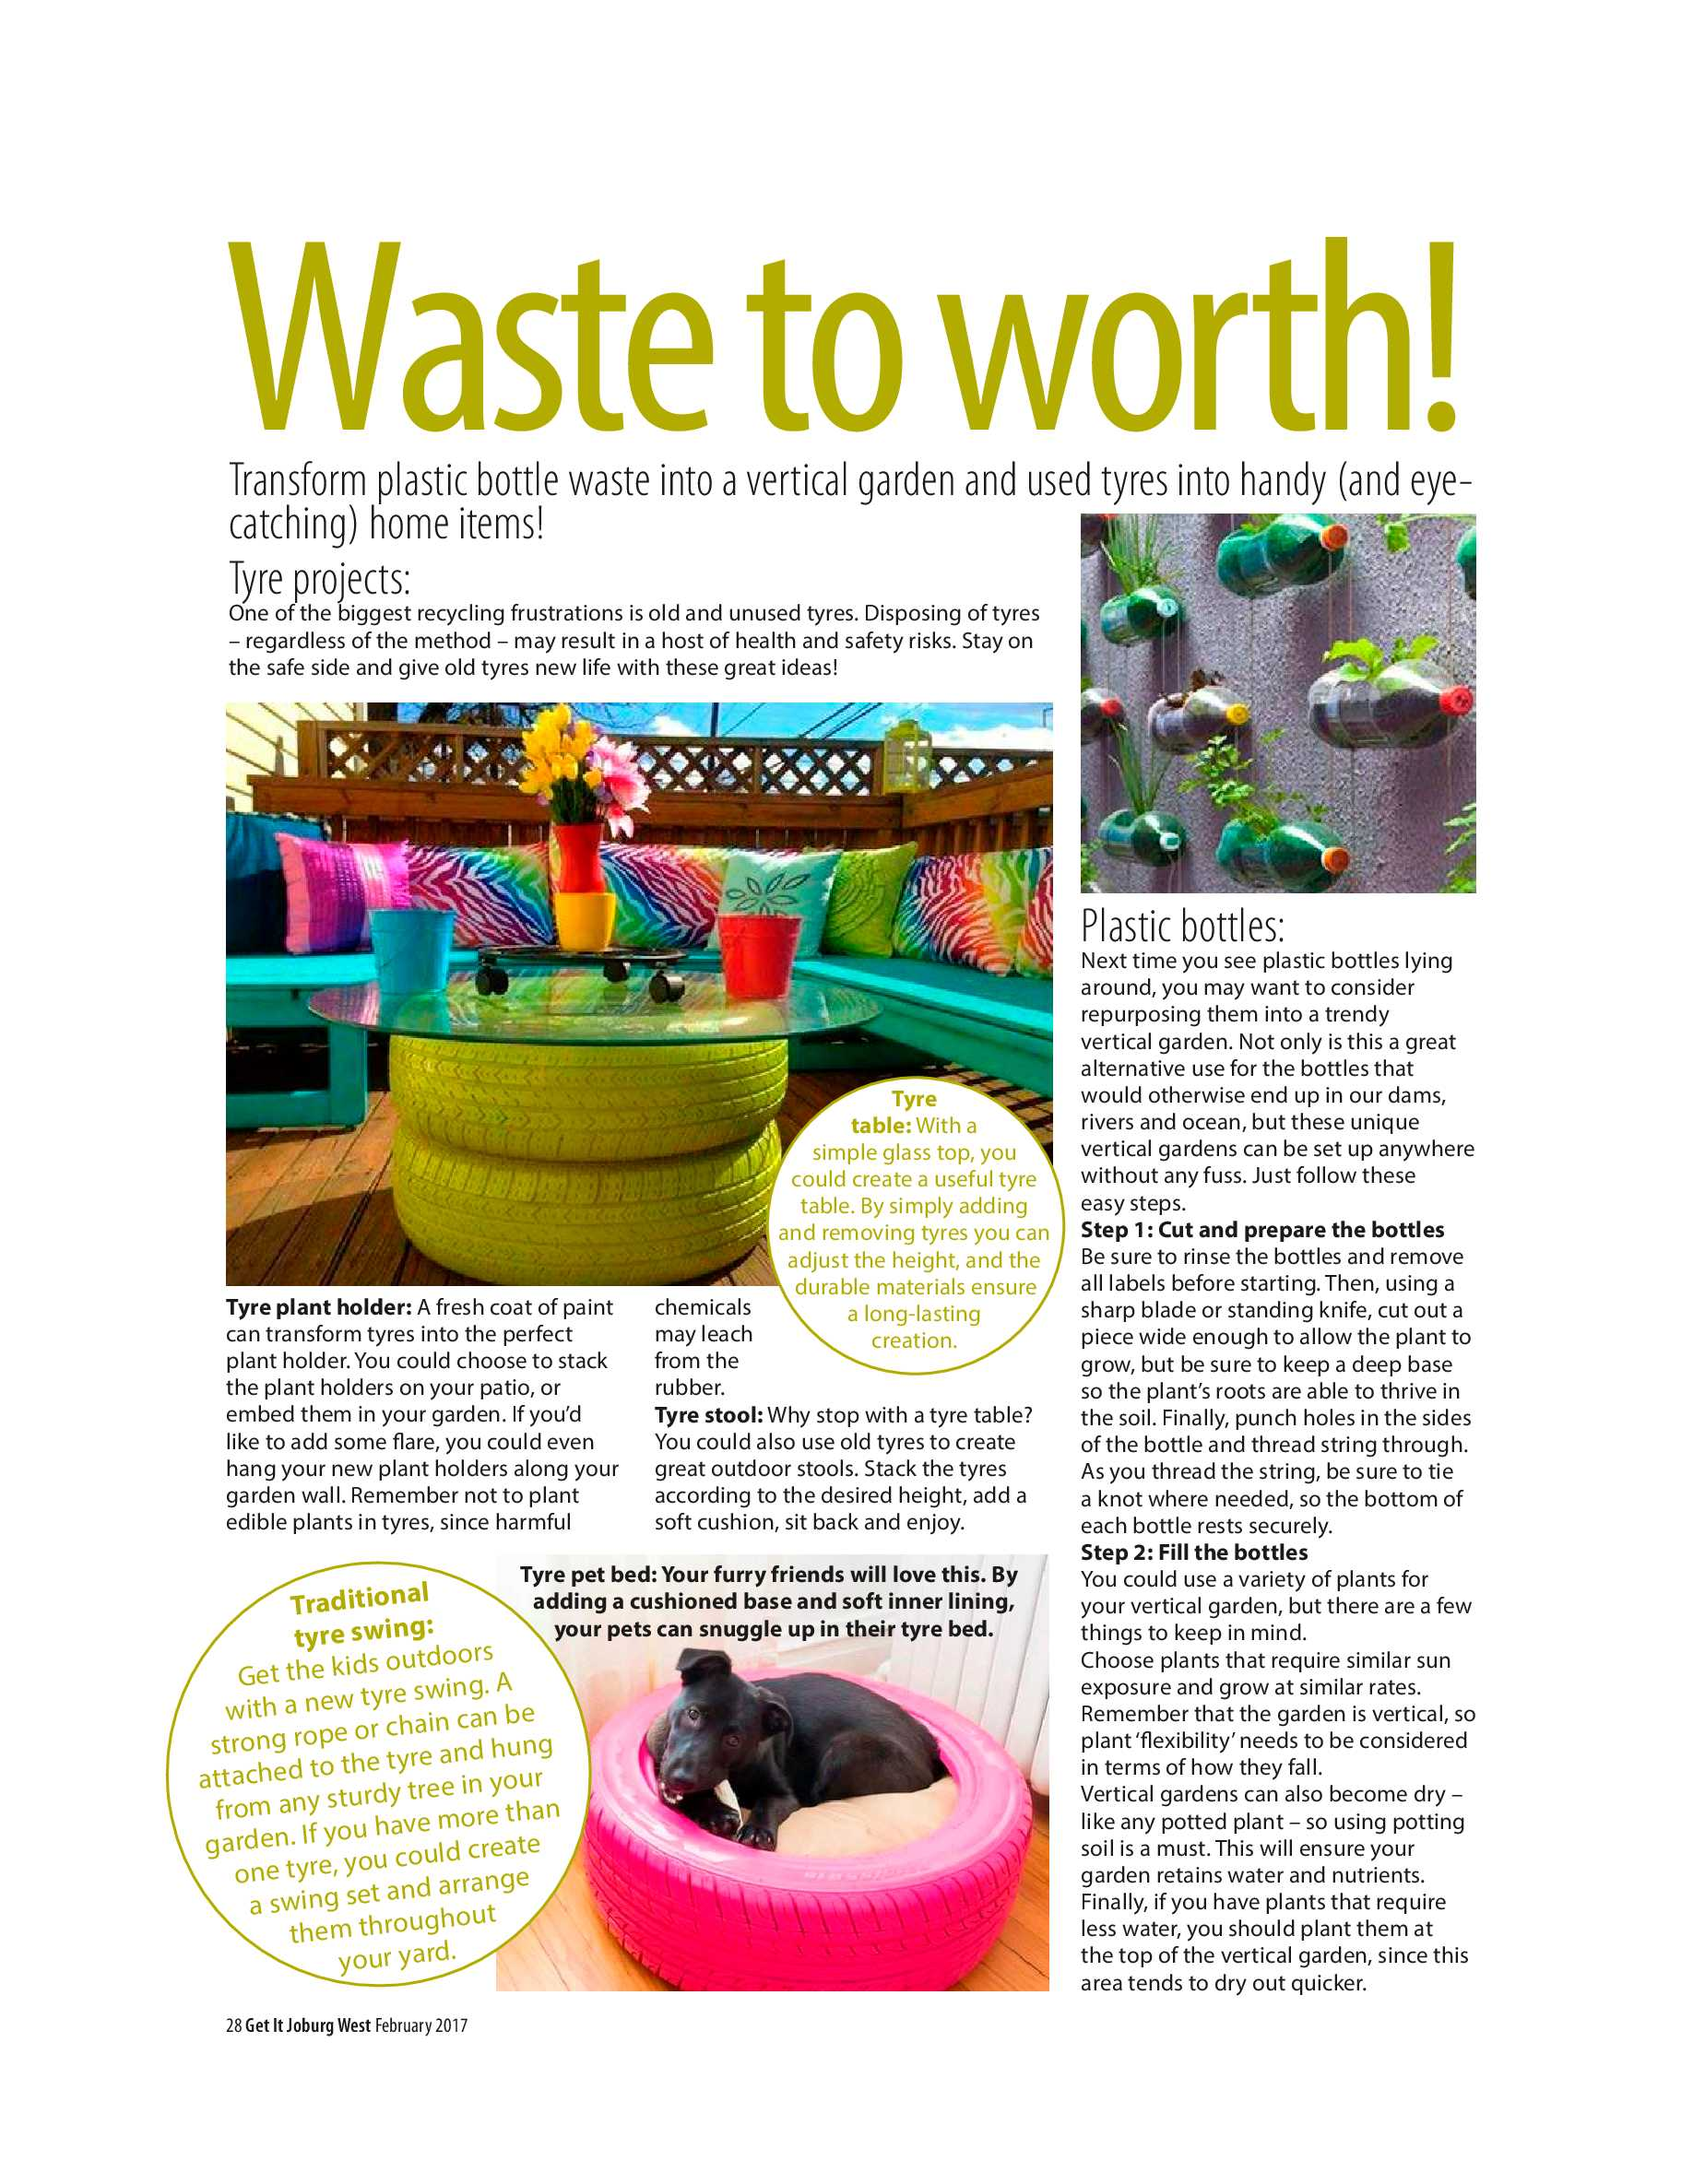 get-it-jhb-west-february-2017-epapers-page-28